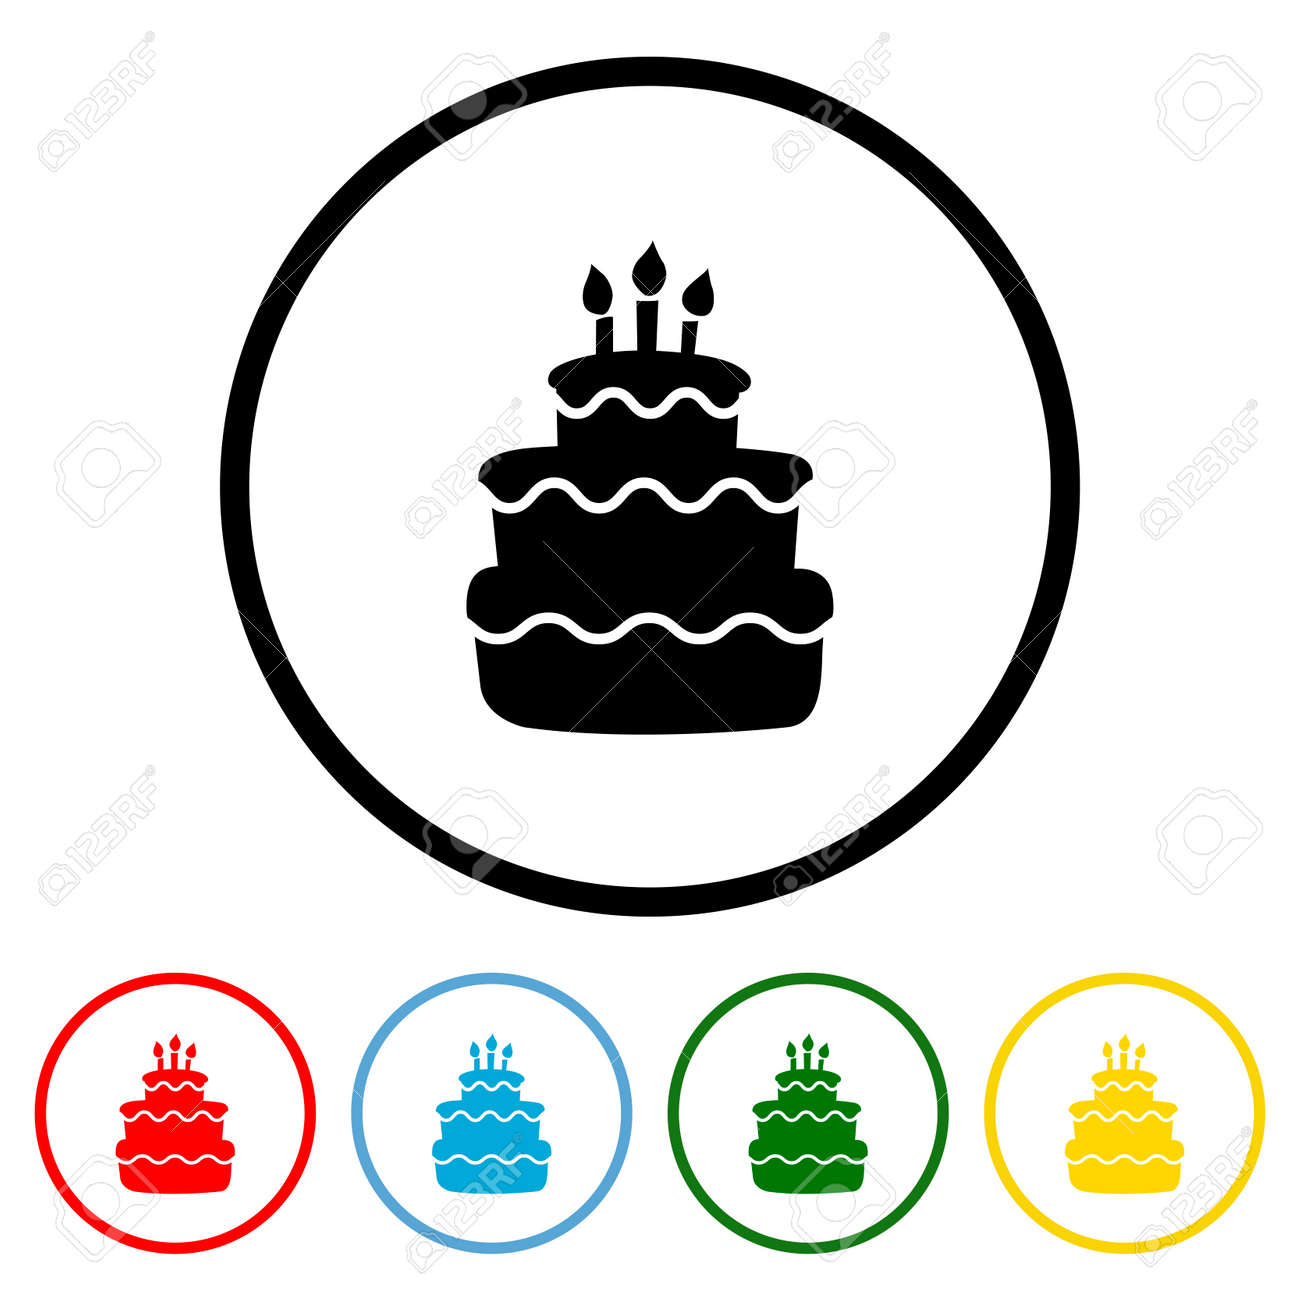 Birthday Cake icon vector illustration design element with four color variations. Vector illustration. All in a single layer. Elements for design. - 172143297